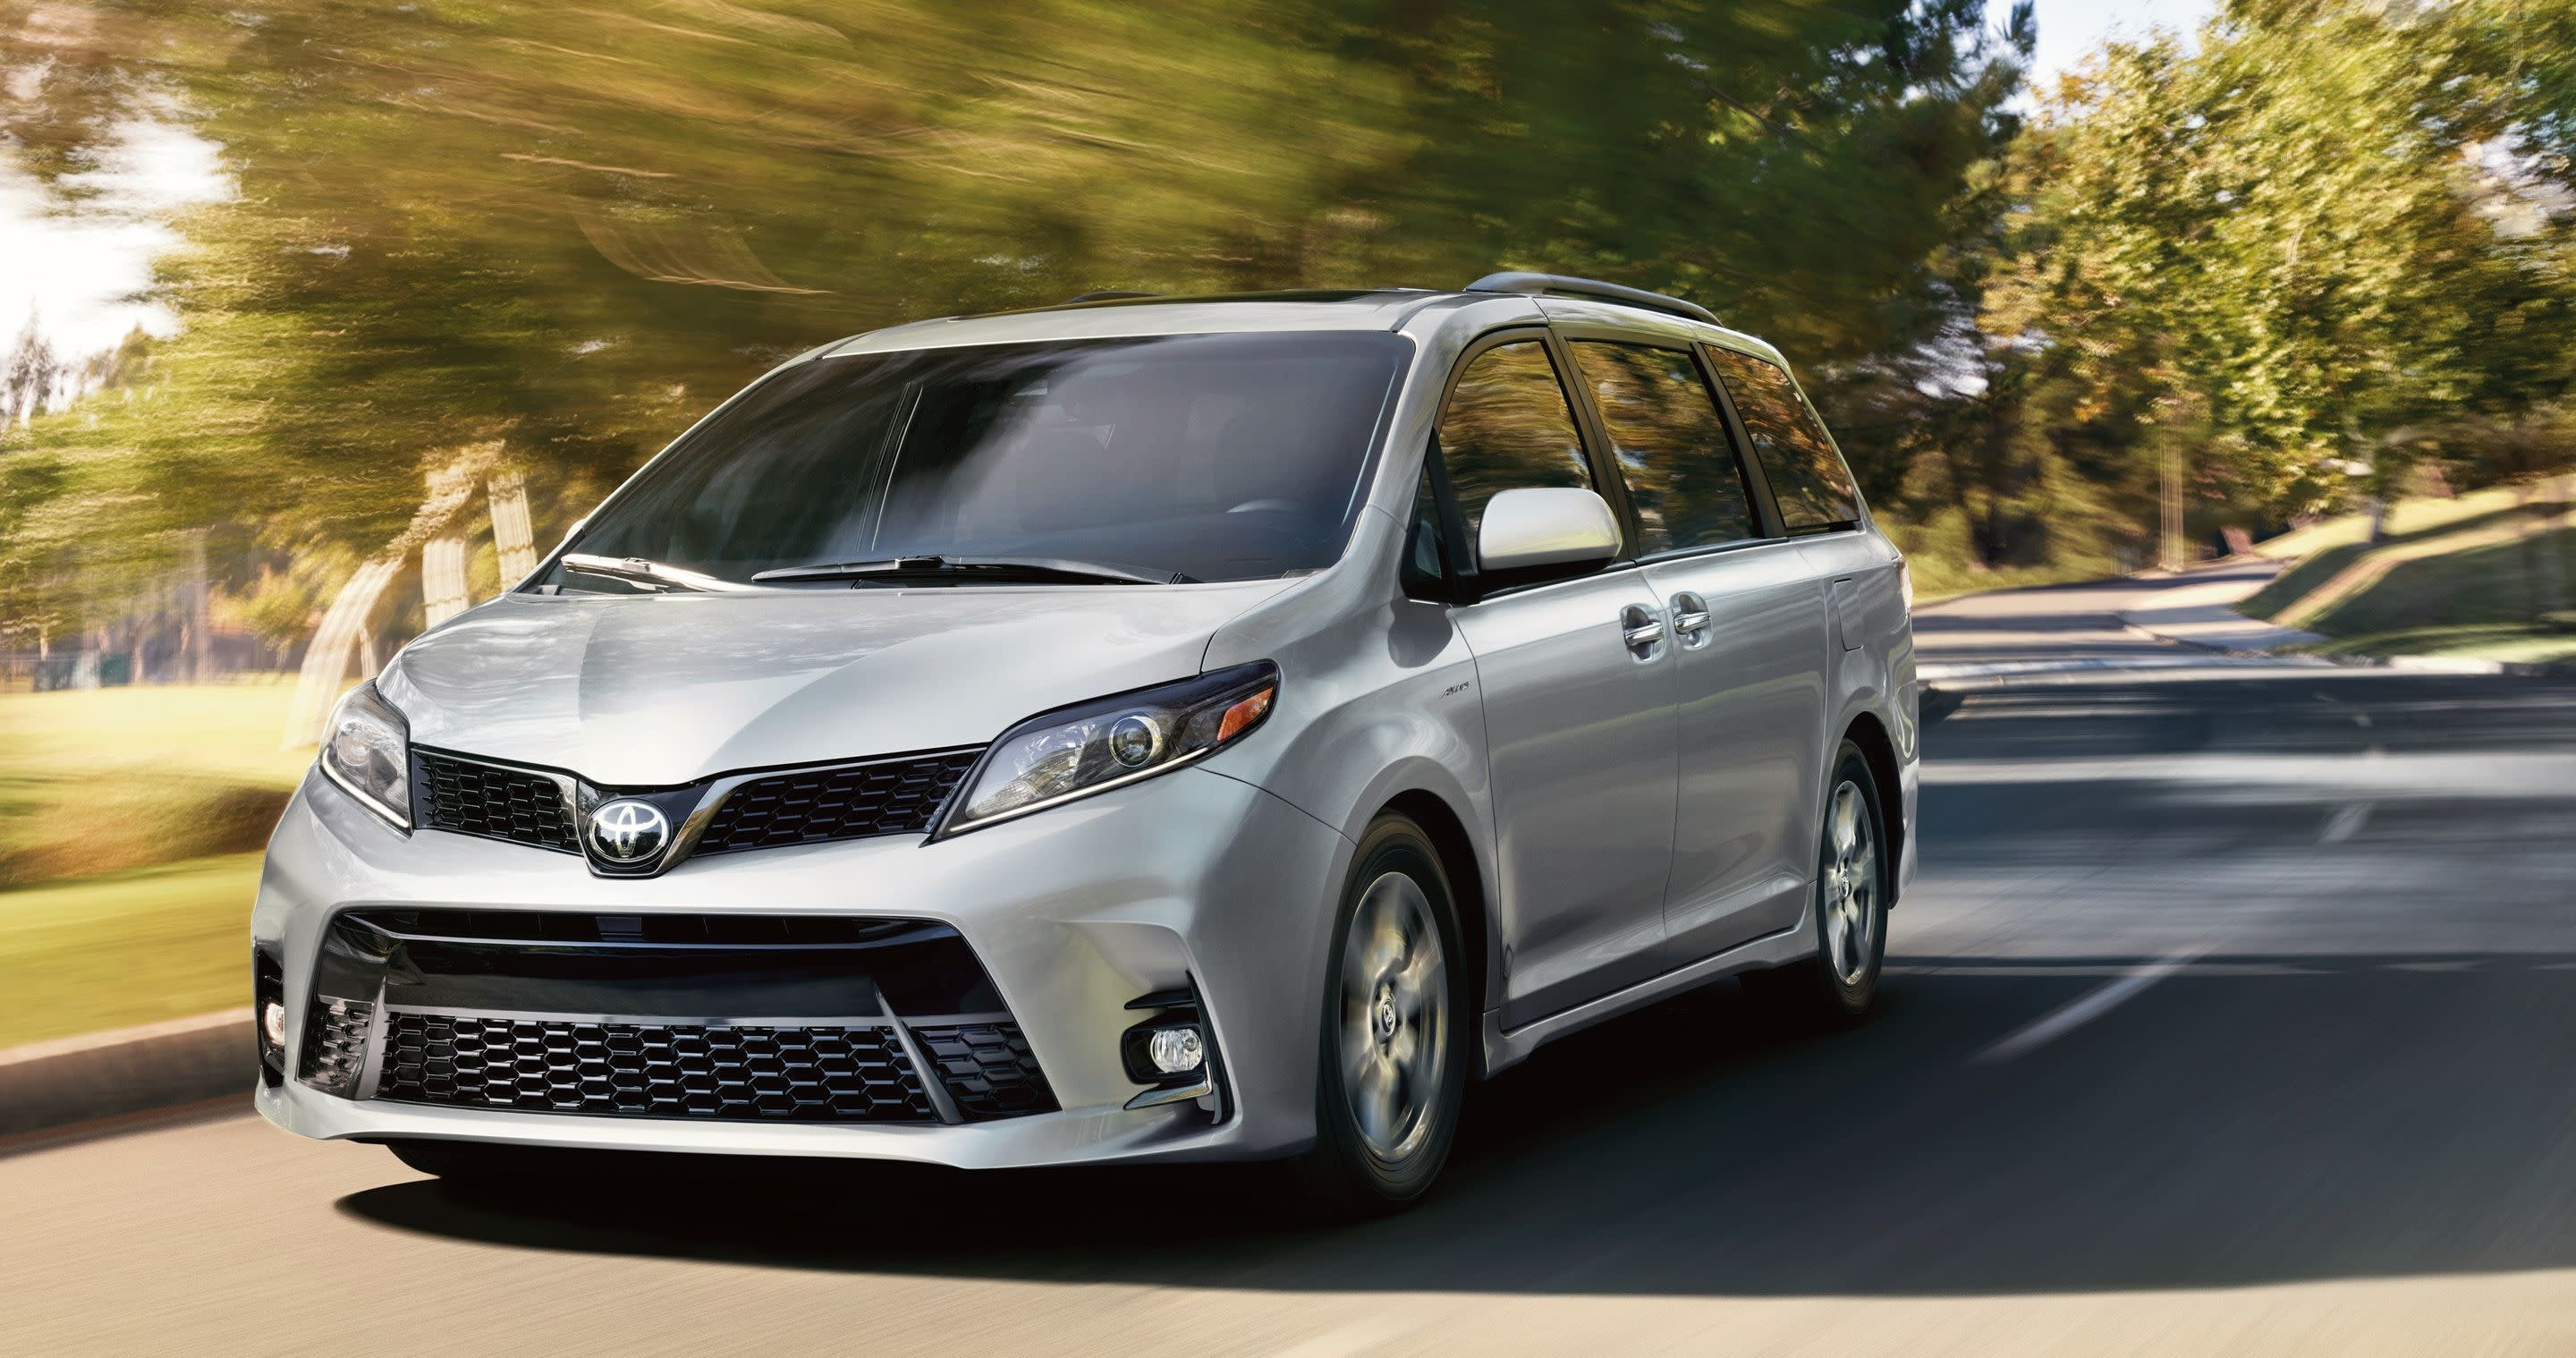 2020 Toyota Sienna vs The Competition near Glen Mills, PA